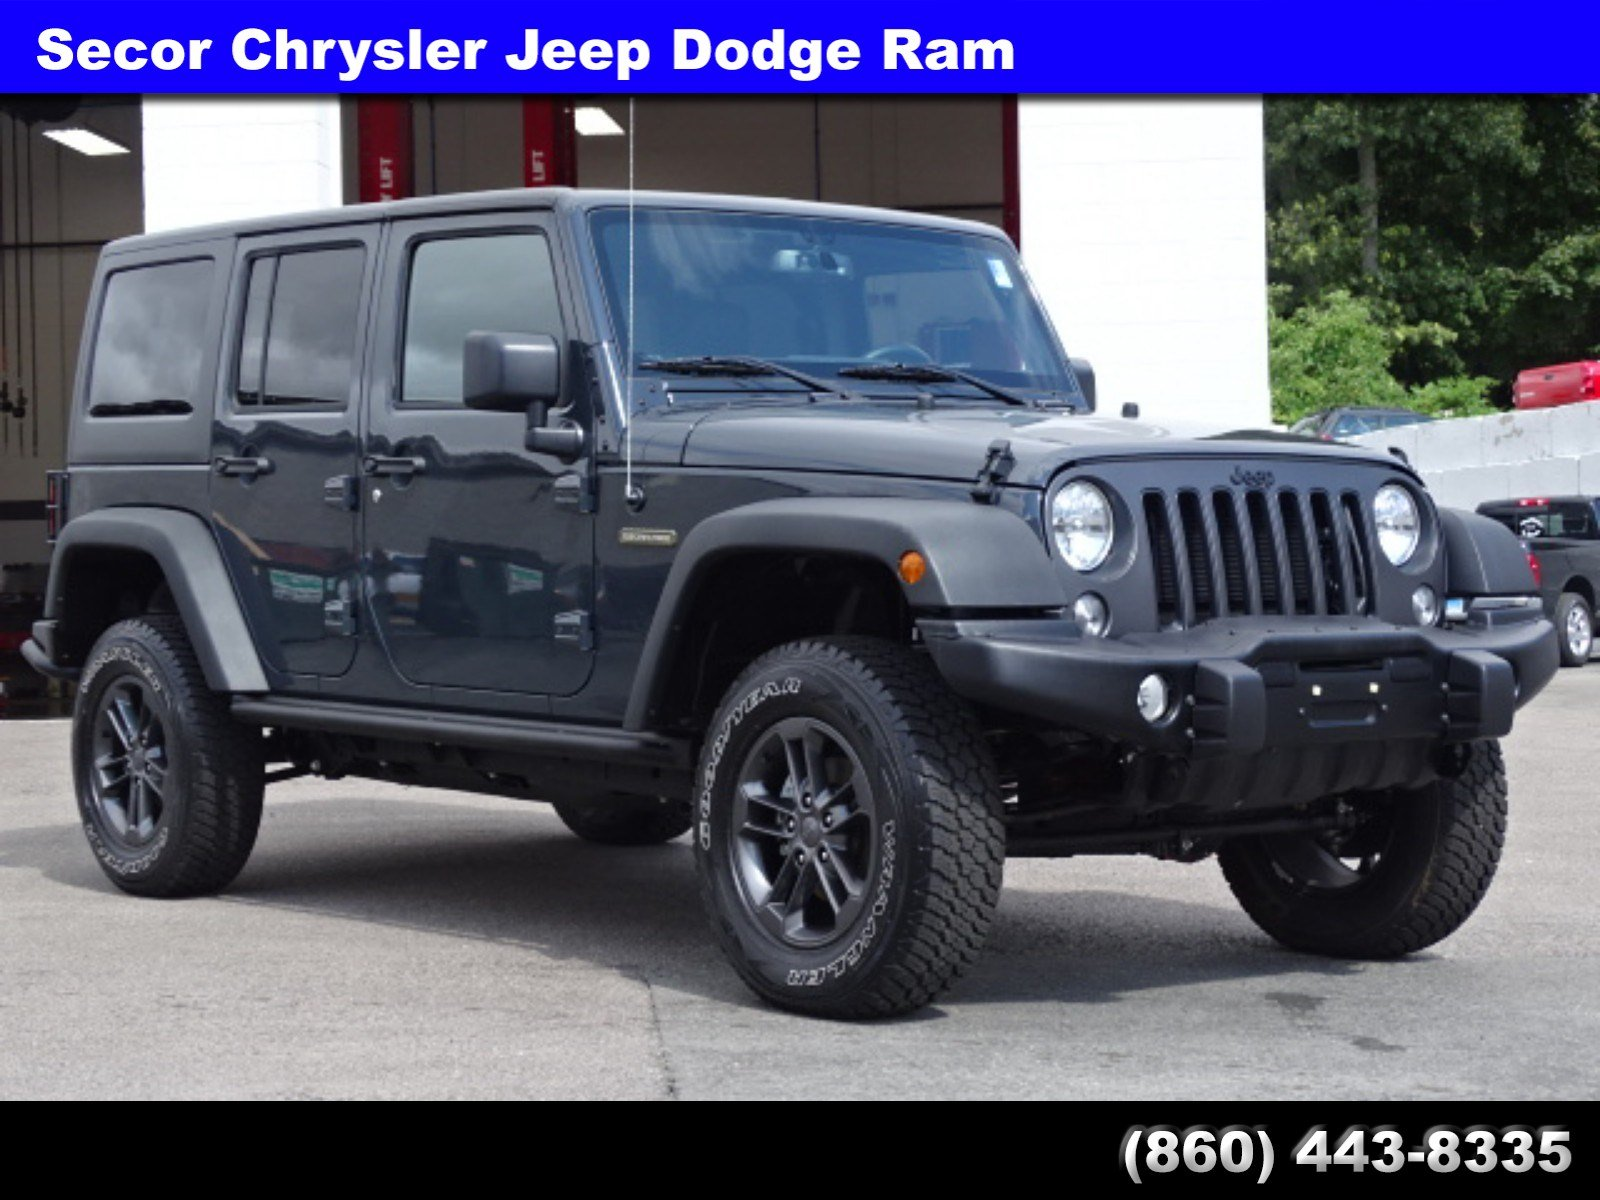 Used 2018 Jeep Wrangler JK Unlimited Freedom Edition Freedom Edition 4x4  For Sale In New London